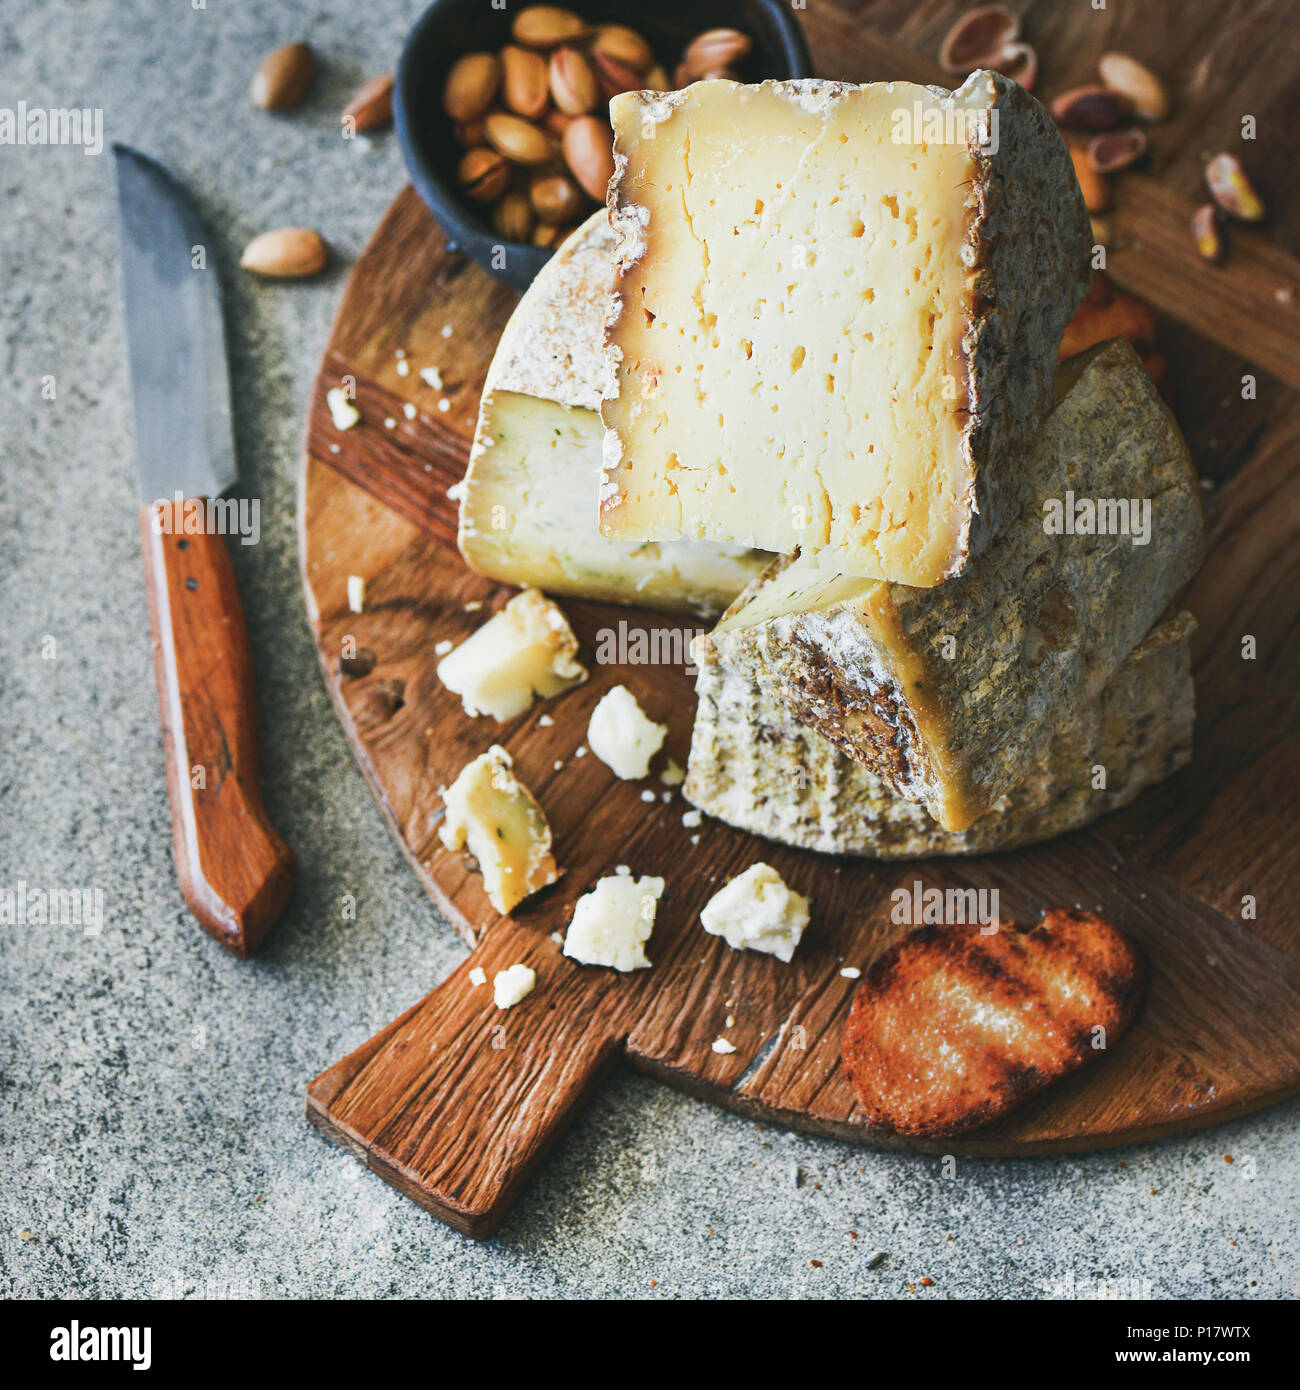 Cheese platter with nuts, honey and bread, square crop - Stock Image